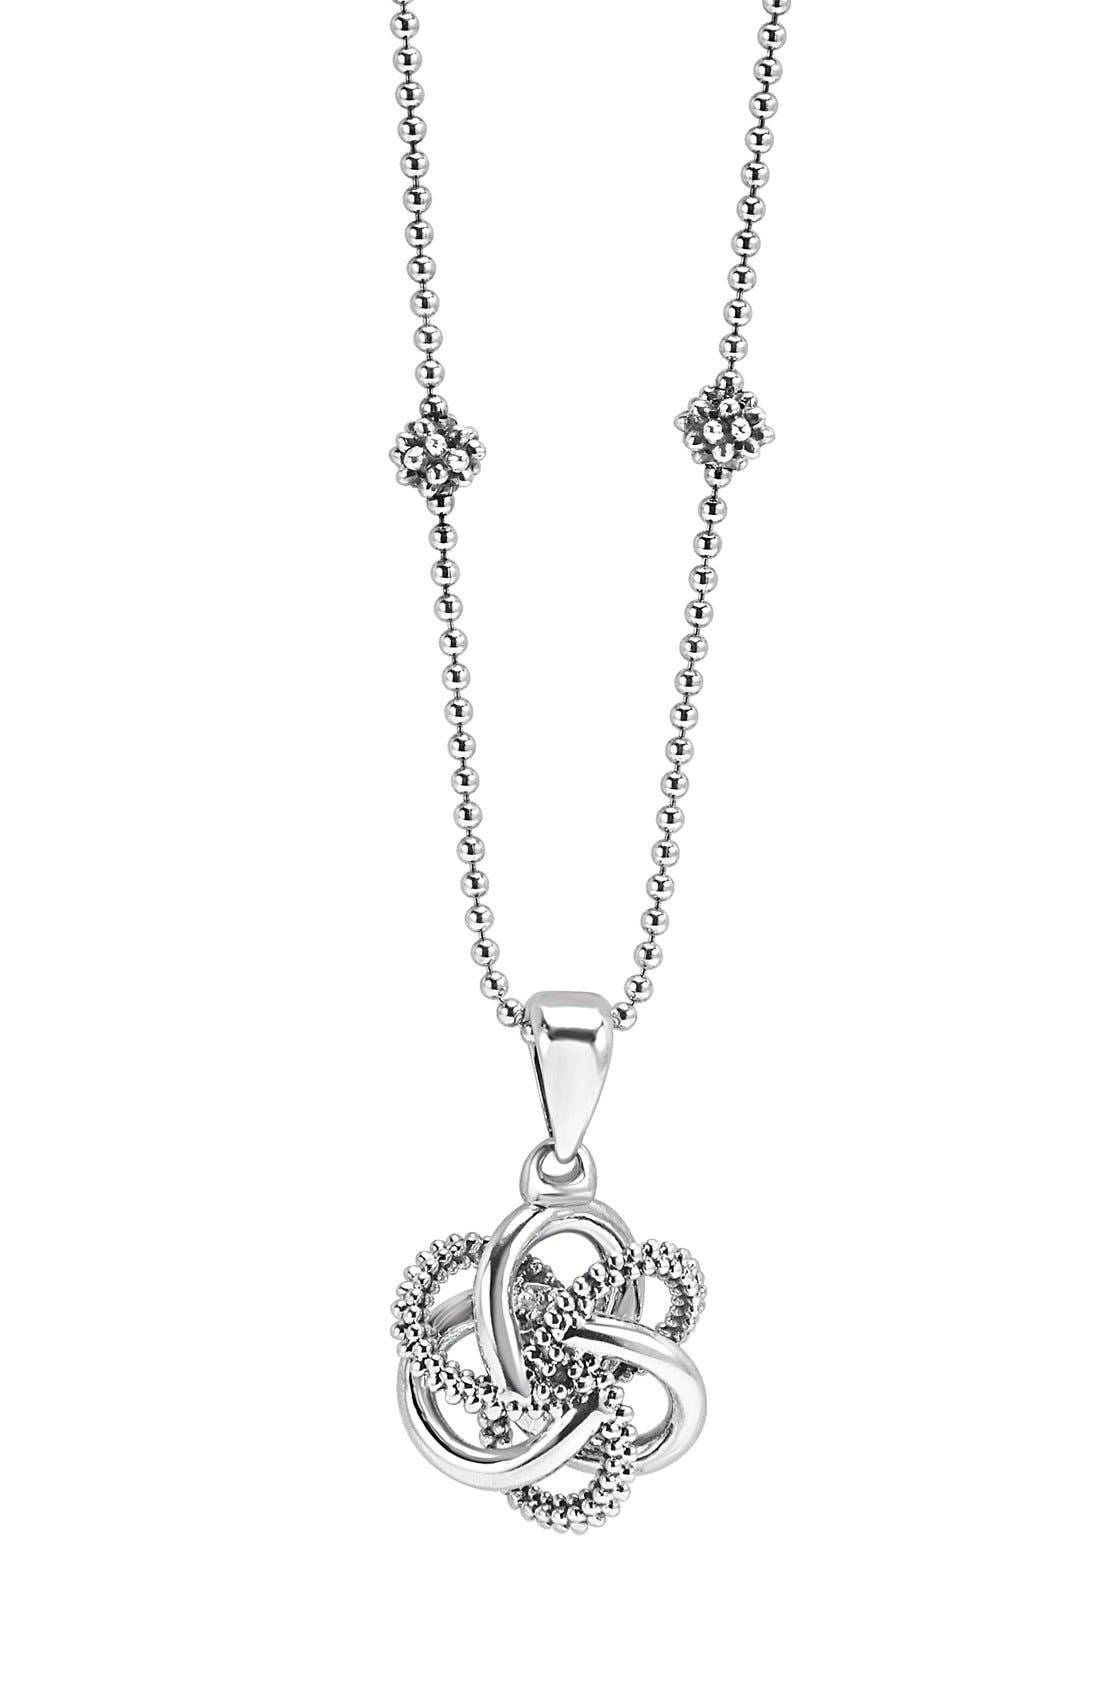 'Love Knot' Pendant Necklace,                             Main thumbnail 1, color,                             STERLING SILVER